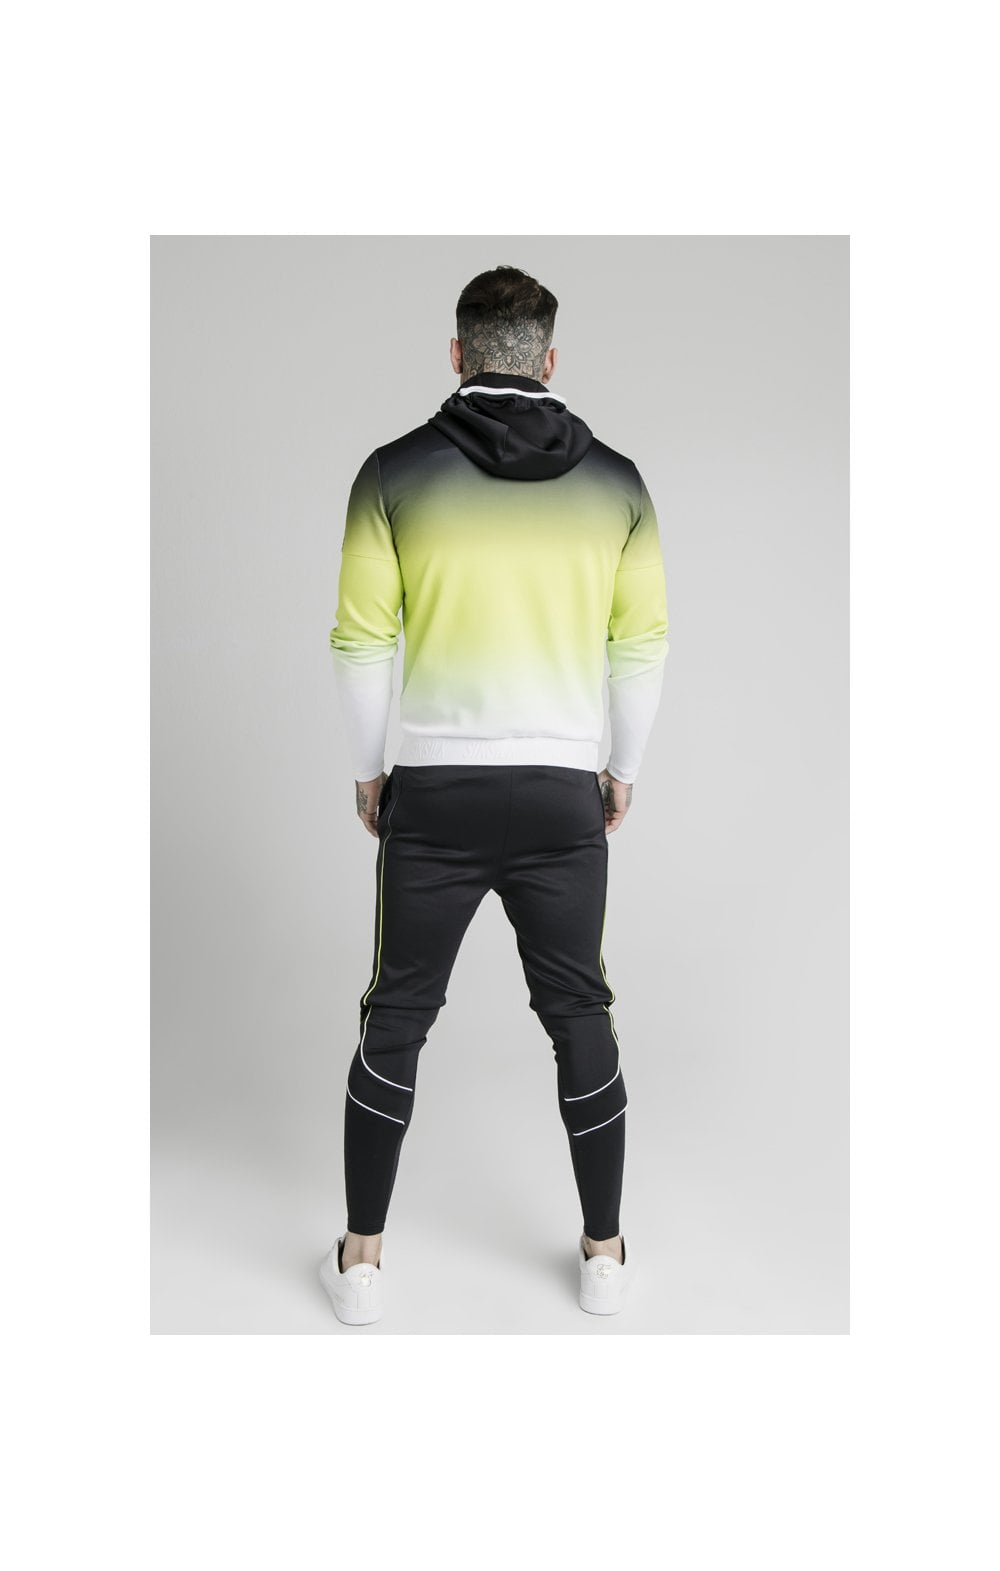 Load image into Gallery viewer, SikSilk Tri-Fade Agility Zip Through Hoodie - Black, Fluro & White (4)